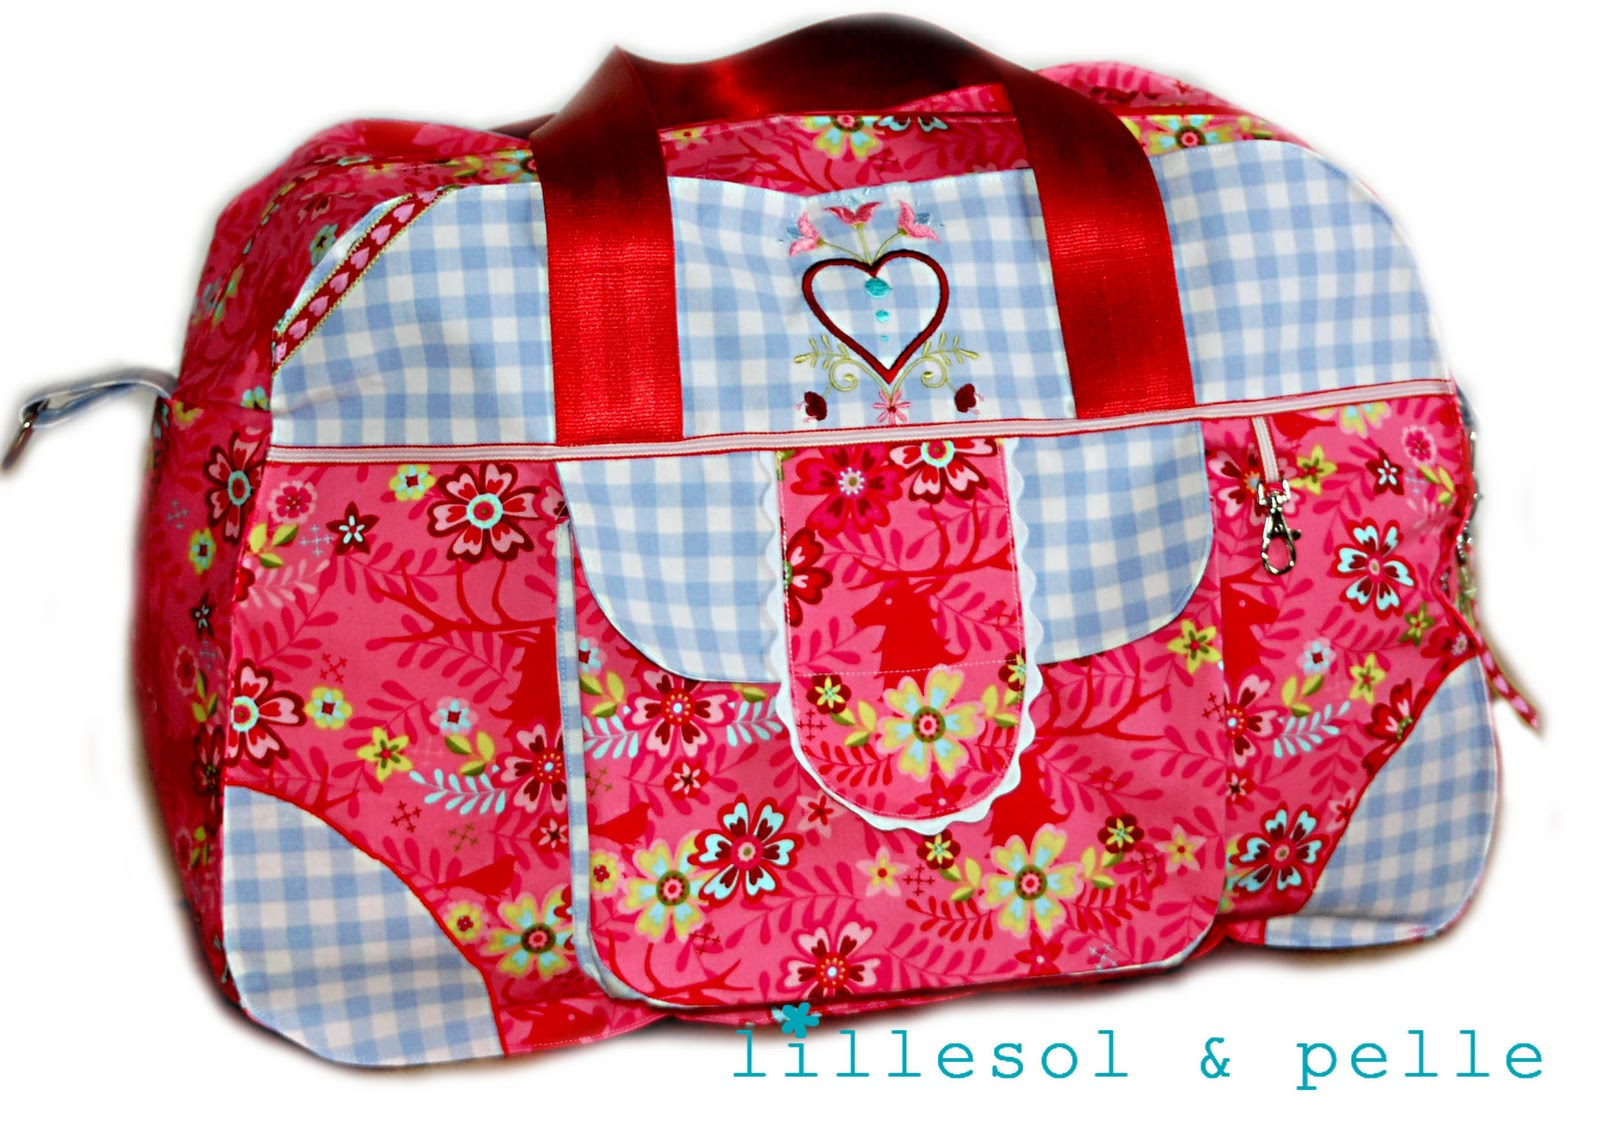 Little Holiday Bag | lillesol & pelle Schnittmuster, Ebooks, Nähen